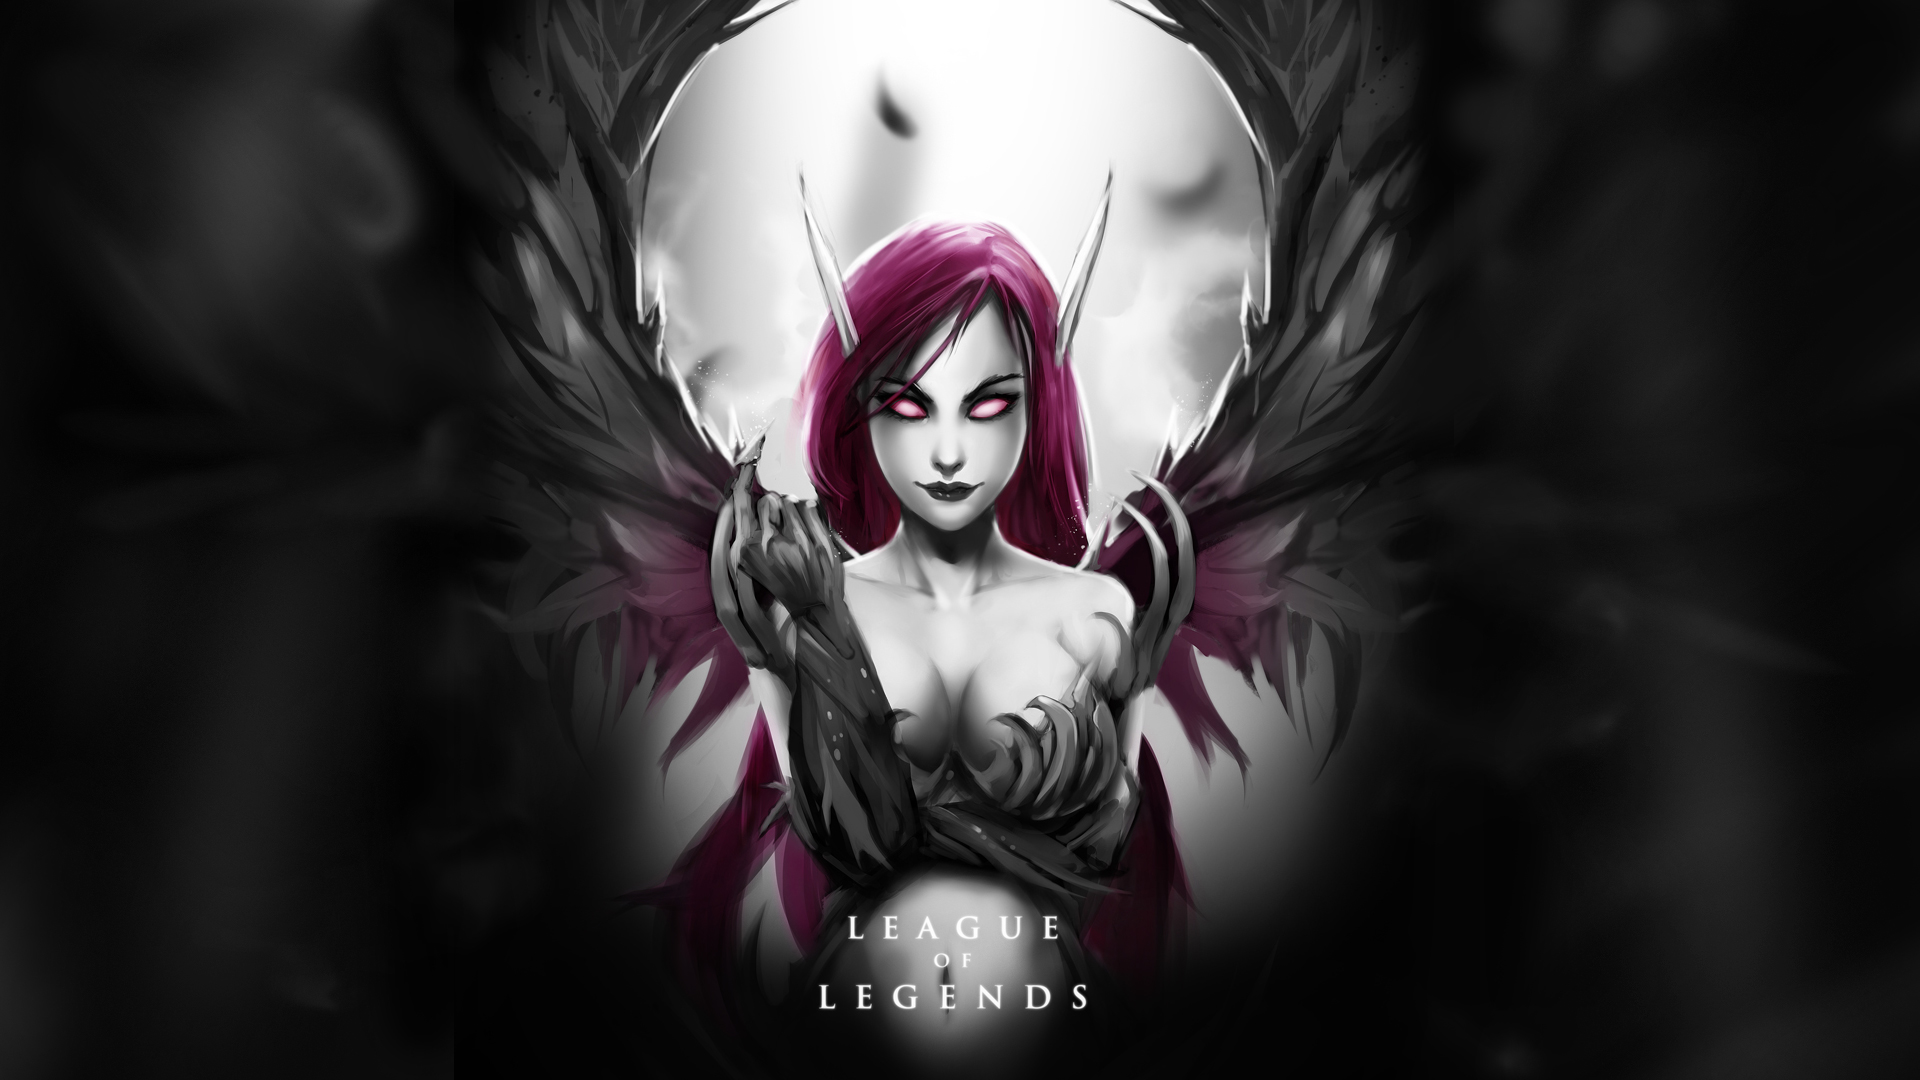 League of Legends wallpaper 103